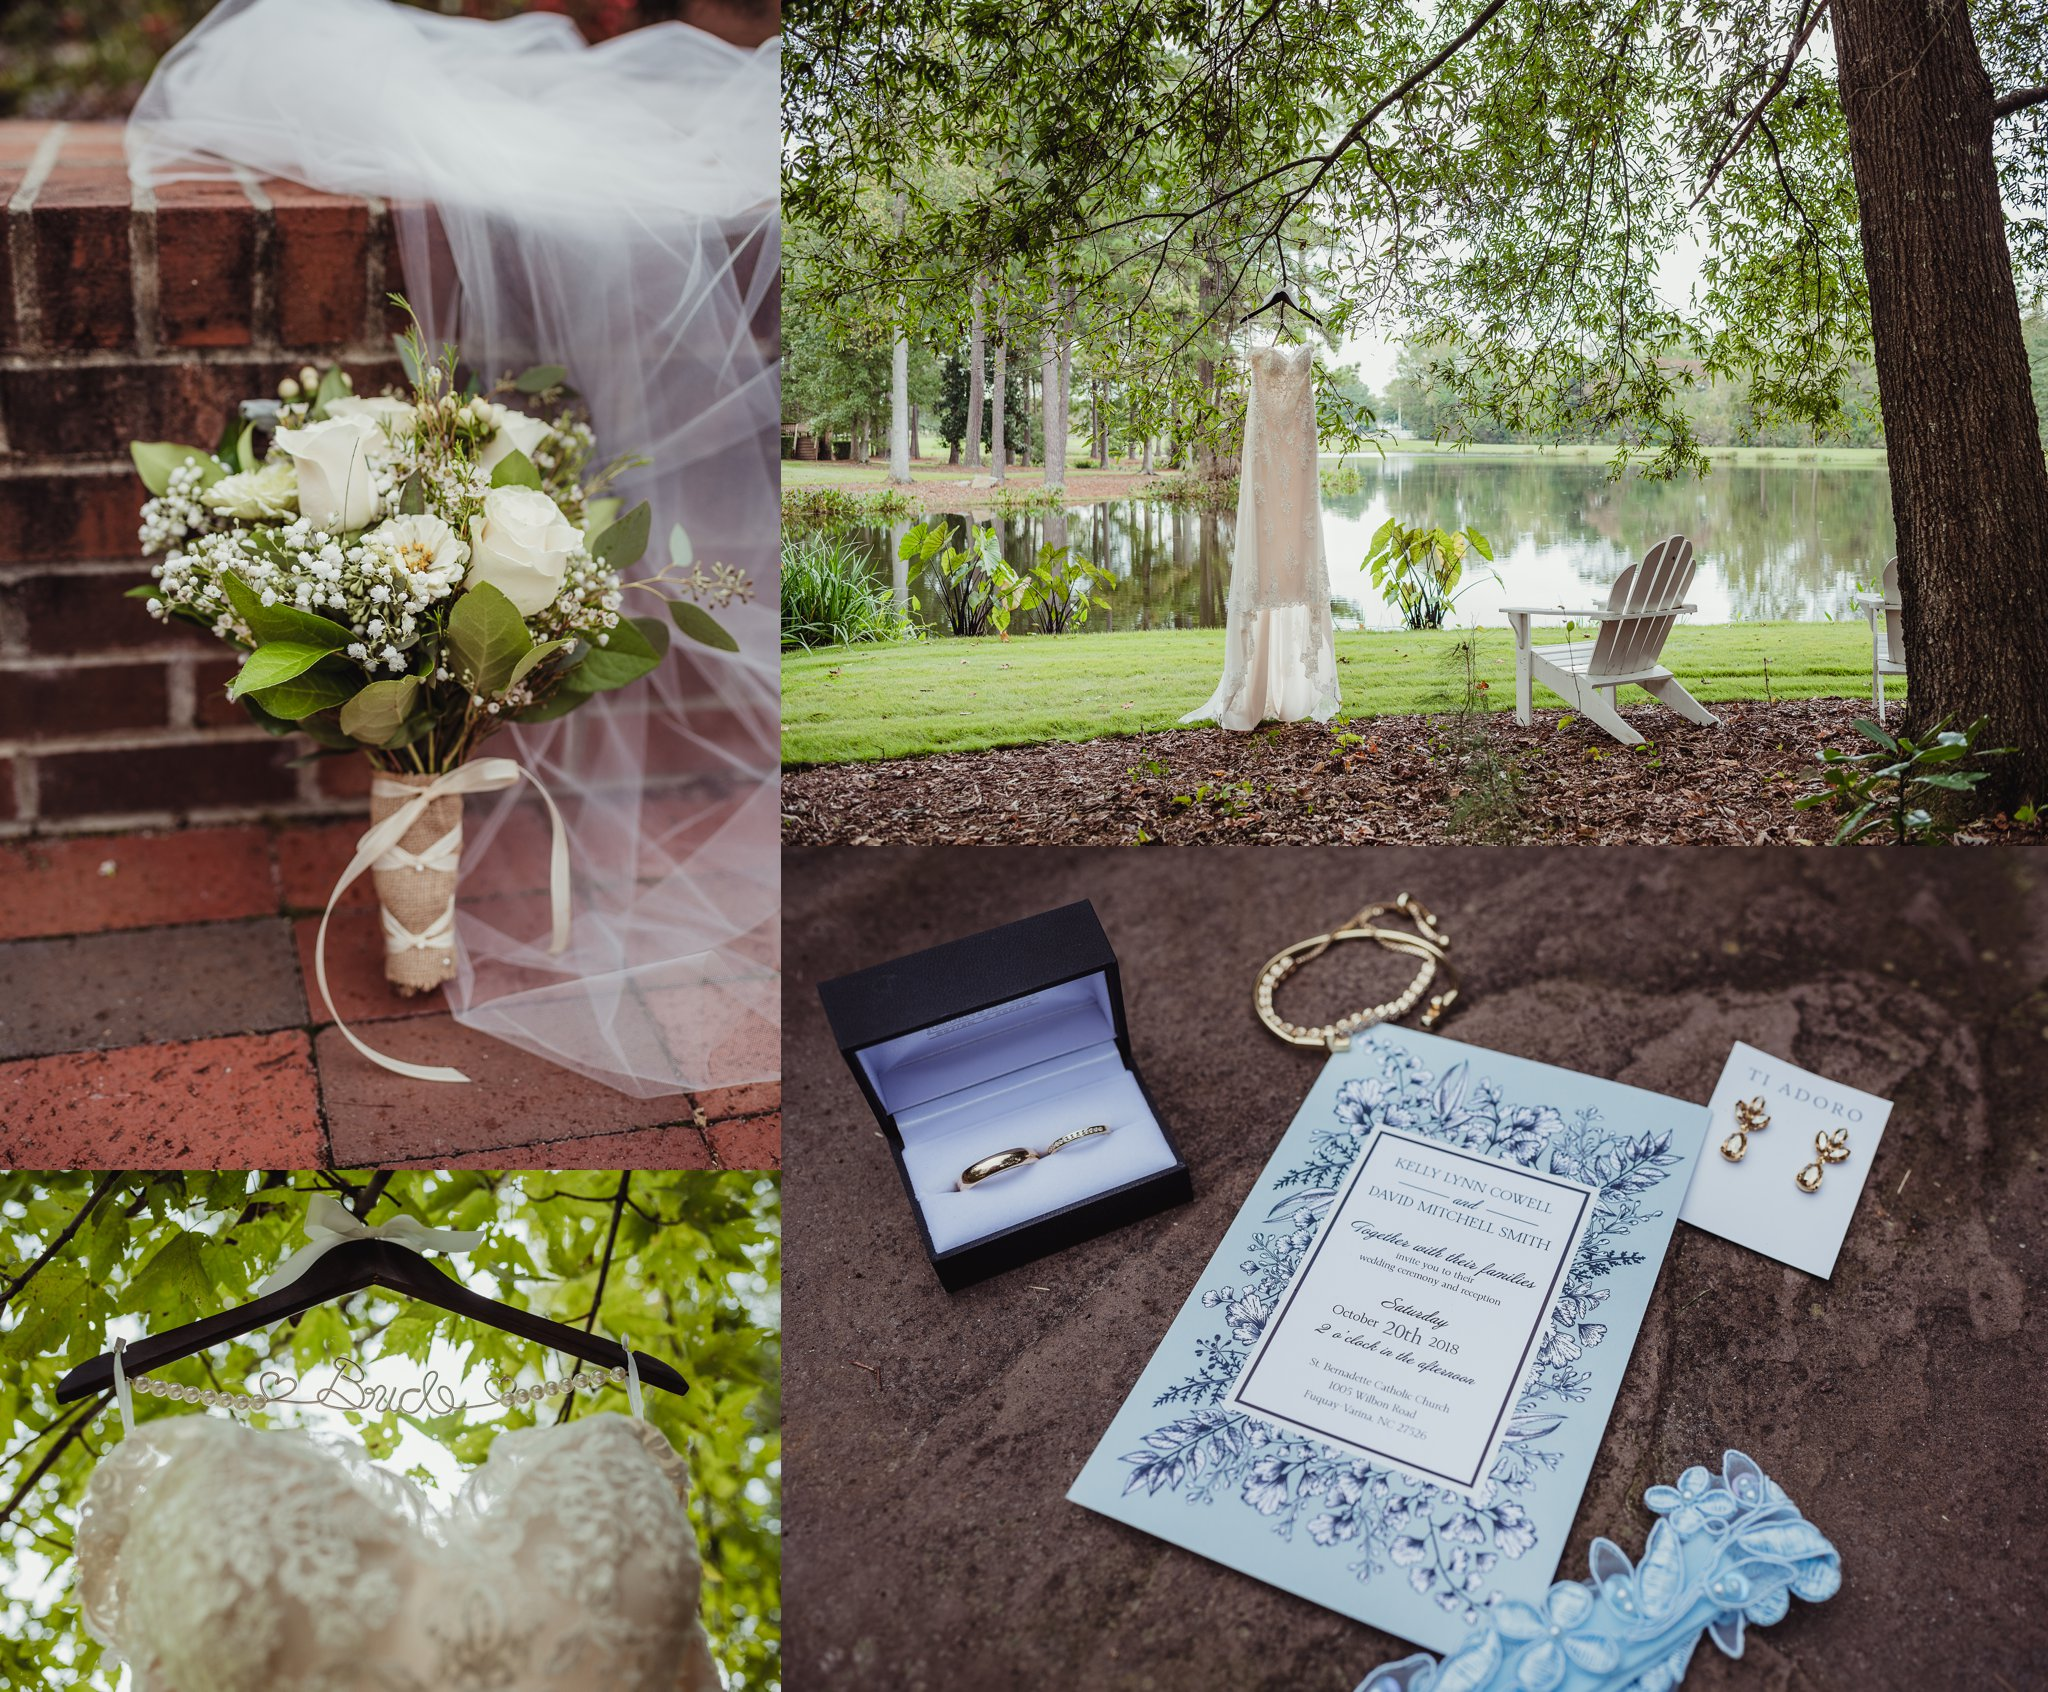 Details of the wedding at the Little Herb House in Raleigh, North Carolina include the wedding dress, white flowers, and a light blue invitation. Photo by Rose Trail Images.